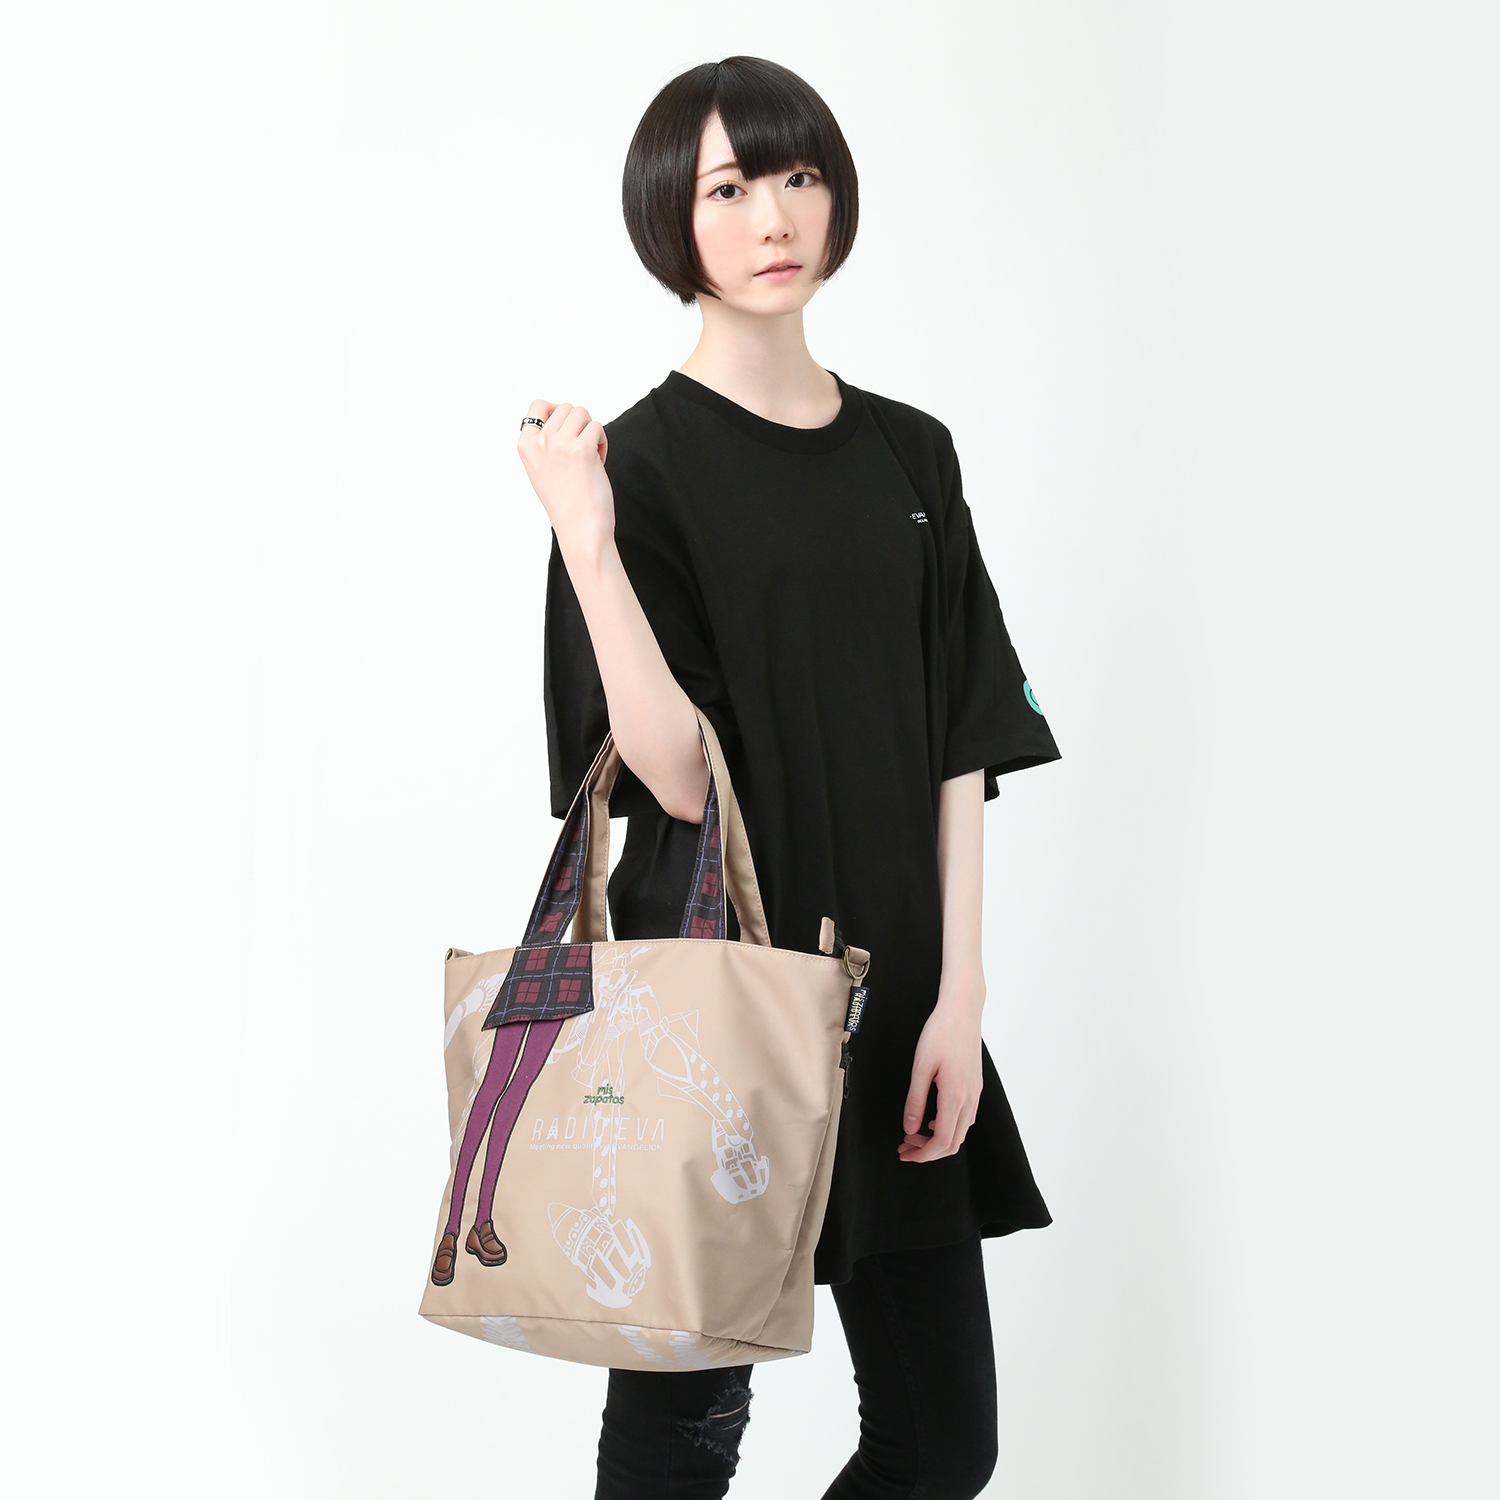 EVANGELION Pilot 2way Tote by mis zapatos (ベージュ(マリ))